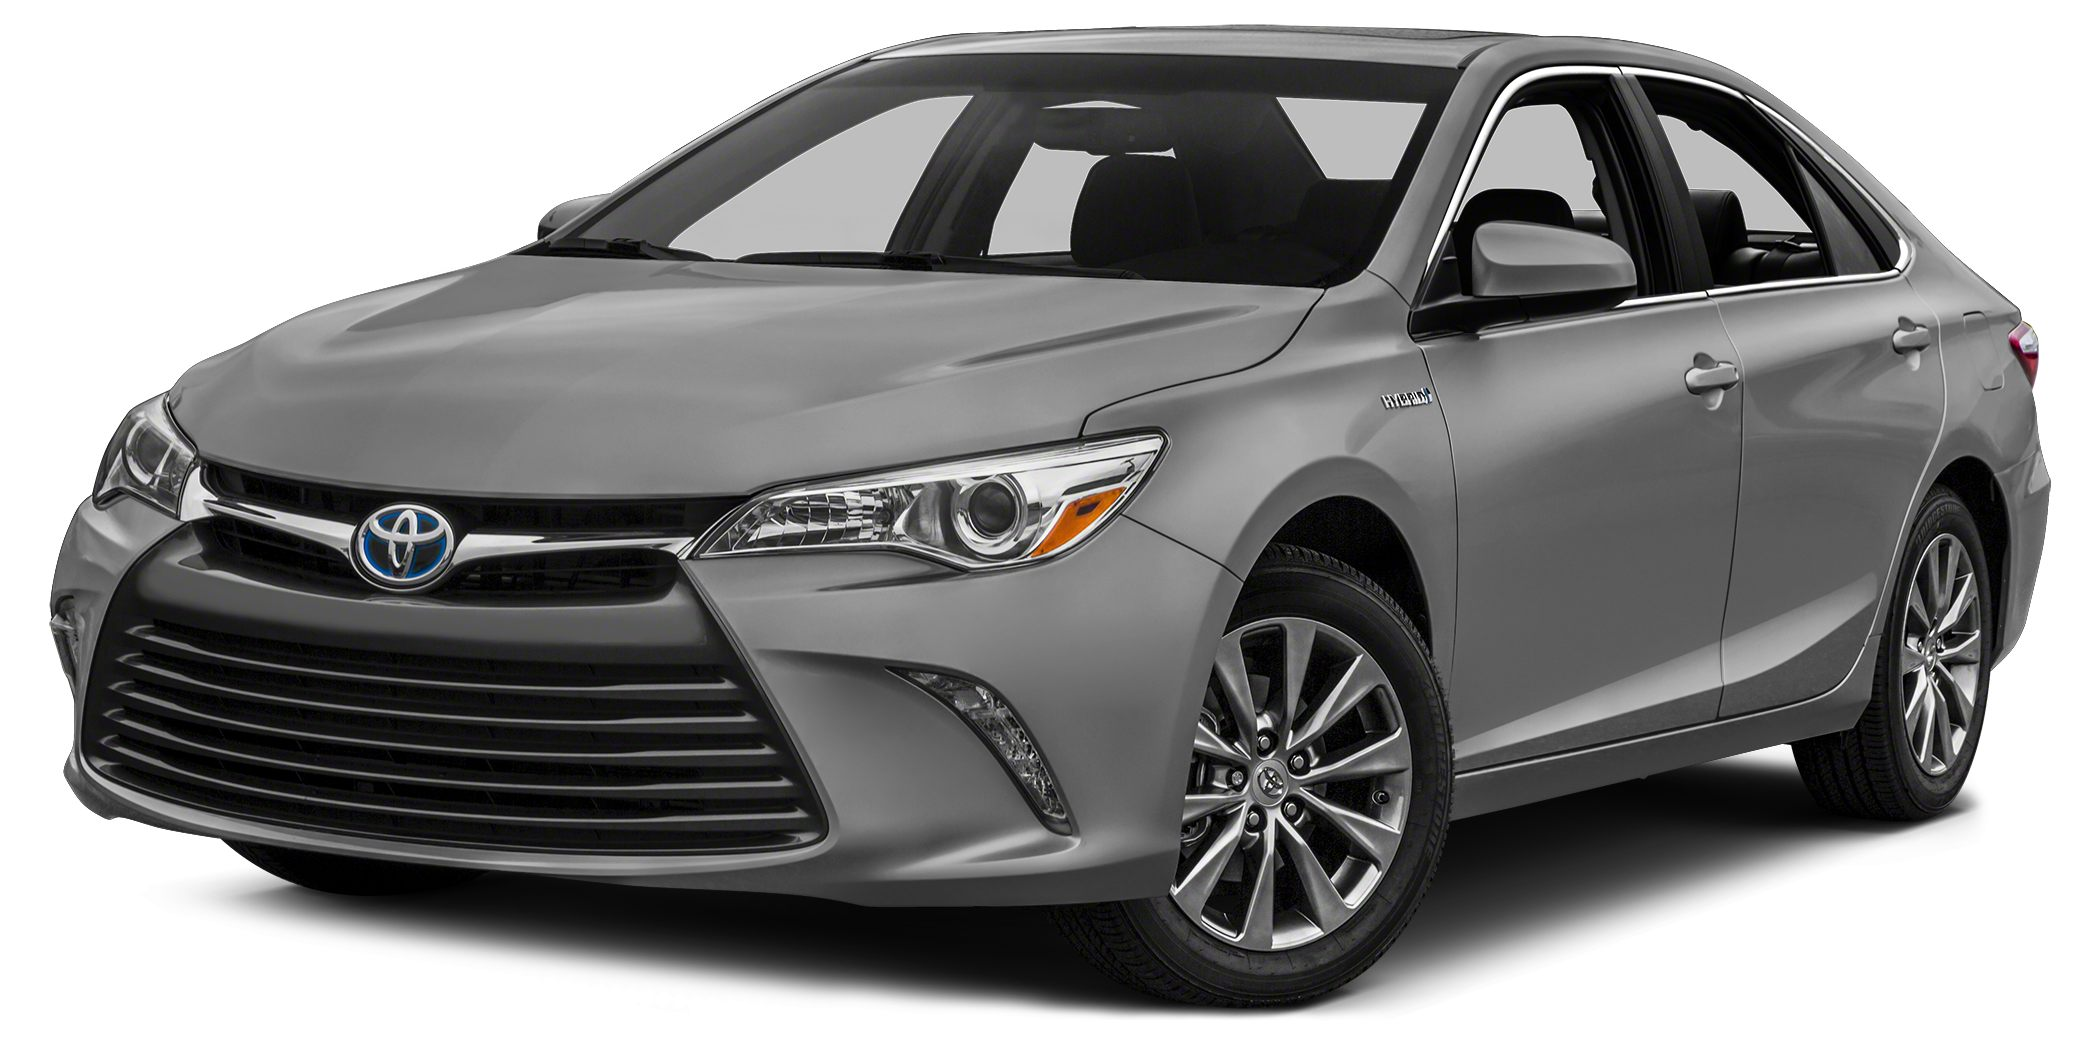 2015 Toyota Camry Hybrid LE CARFAX 1-Owner LOW MILES - 18682 FUEL EFFICIENT 39 MPG Hwy43 MPG C